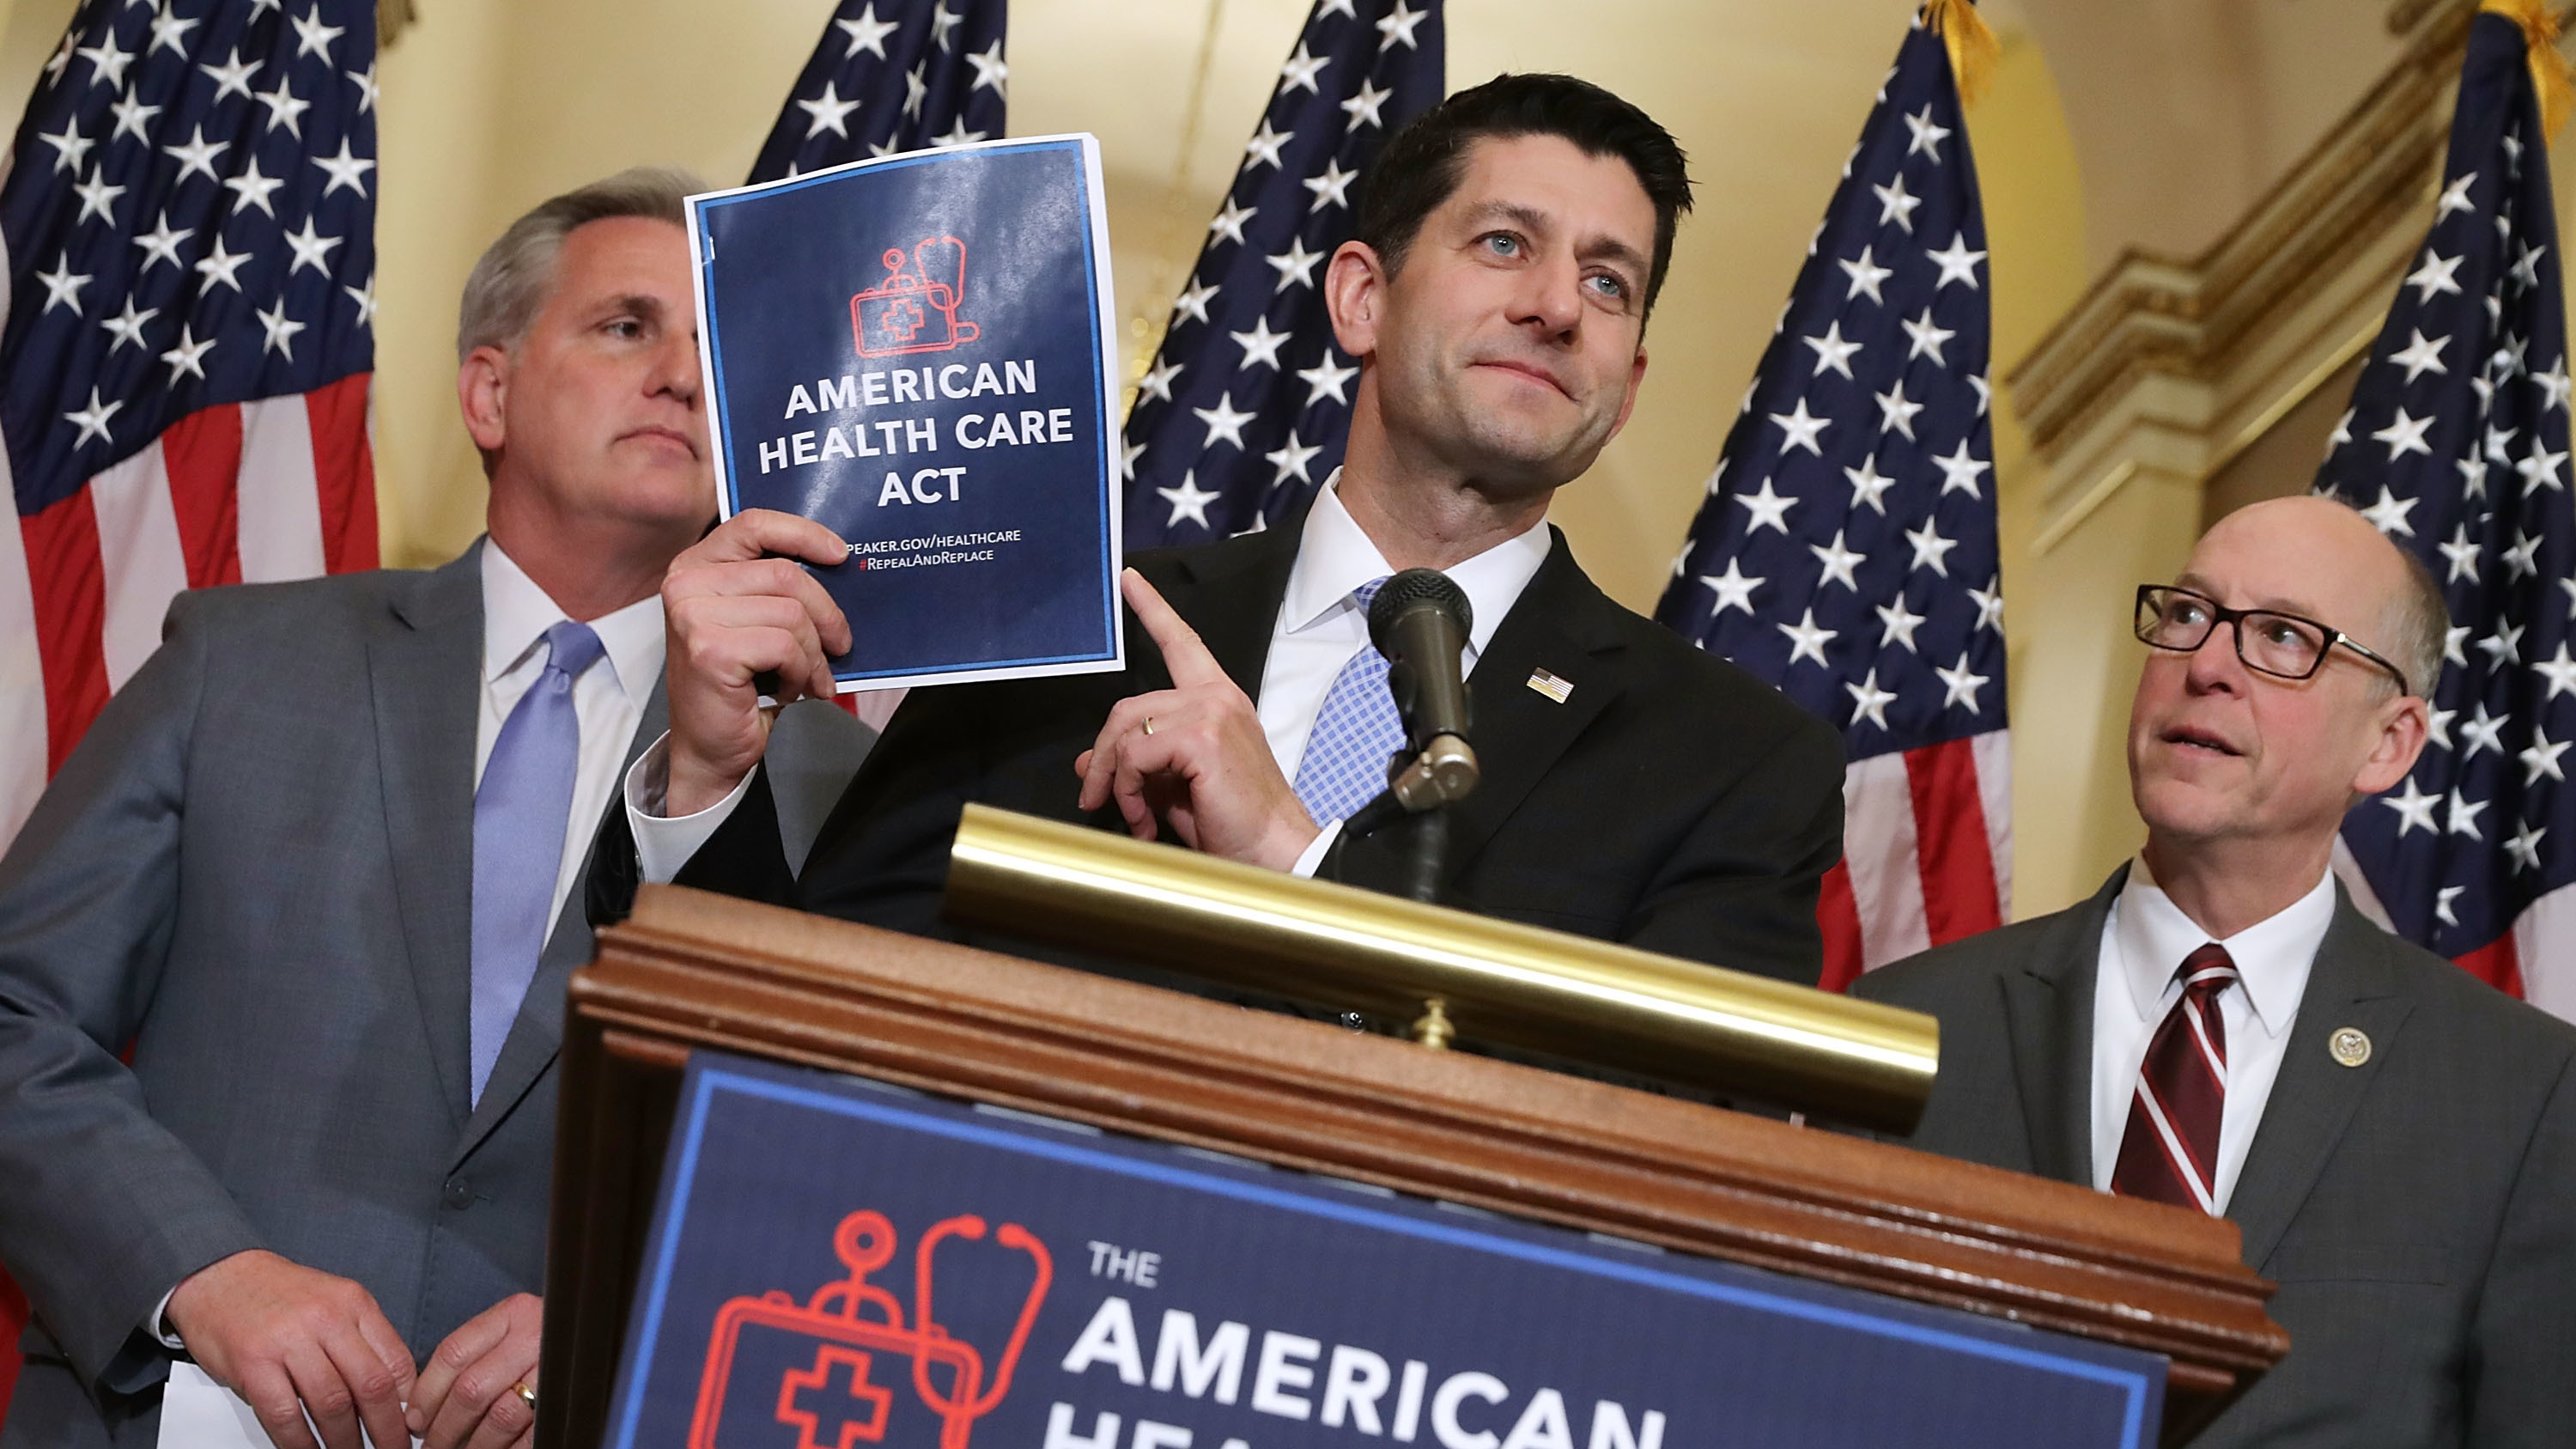 CBO: House bill insures 23 million fewer Americans